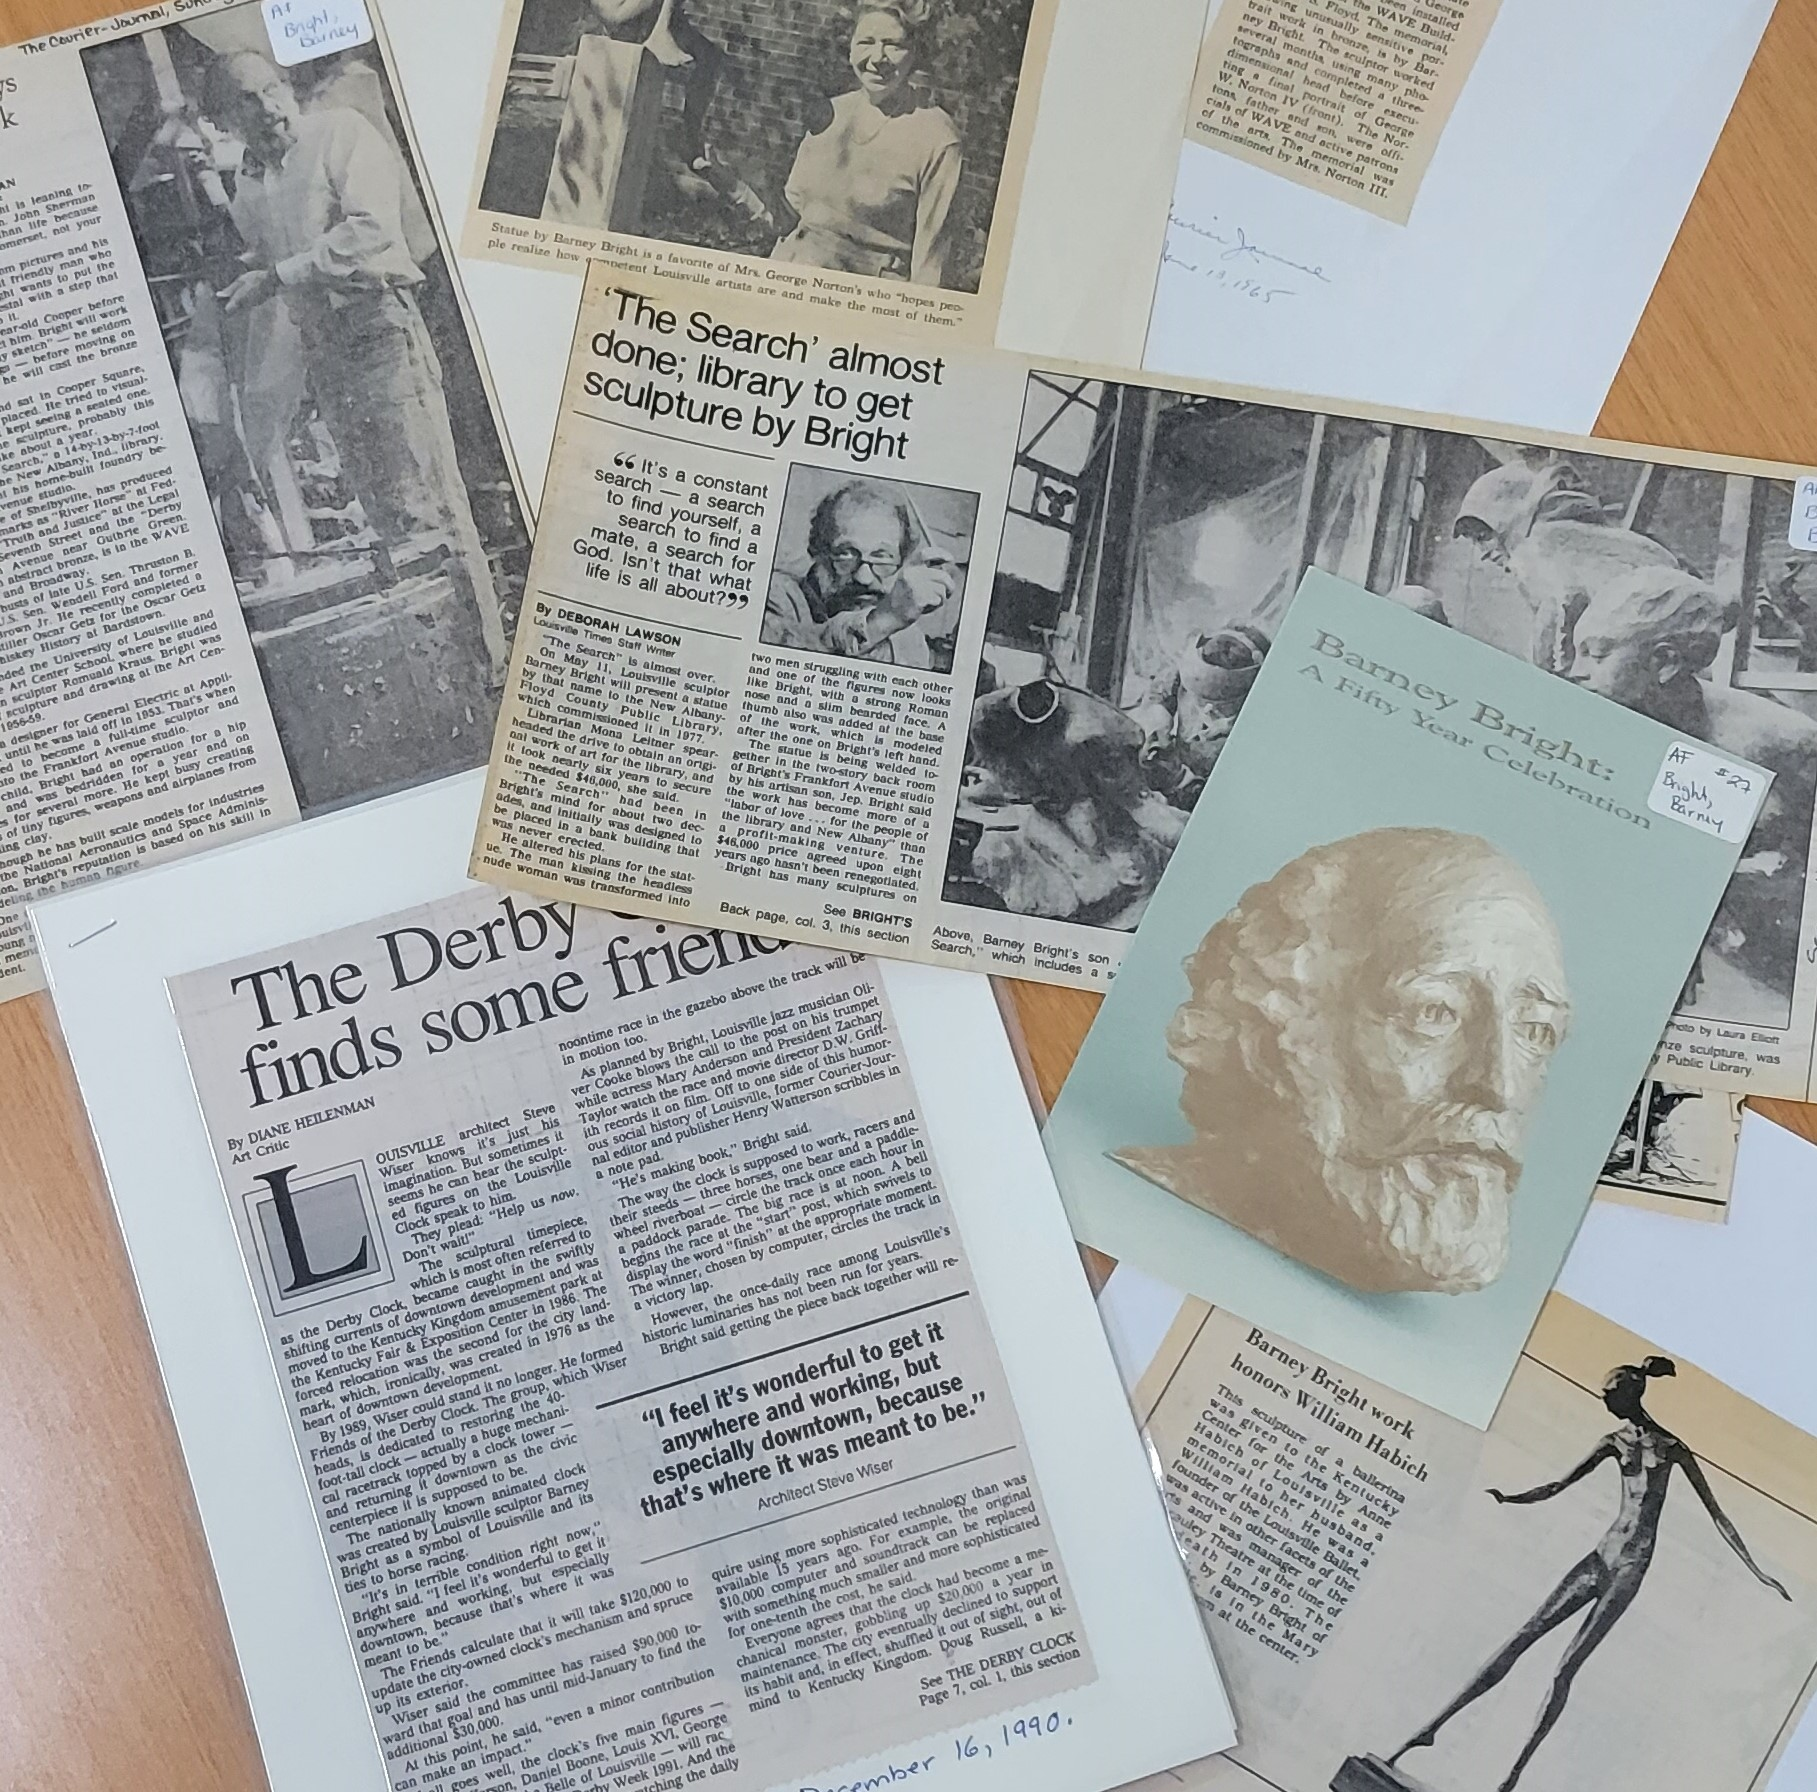 image of contents of an artist file